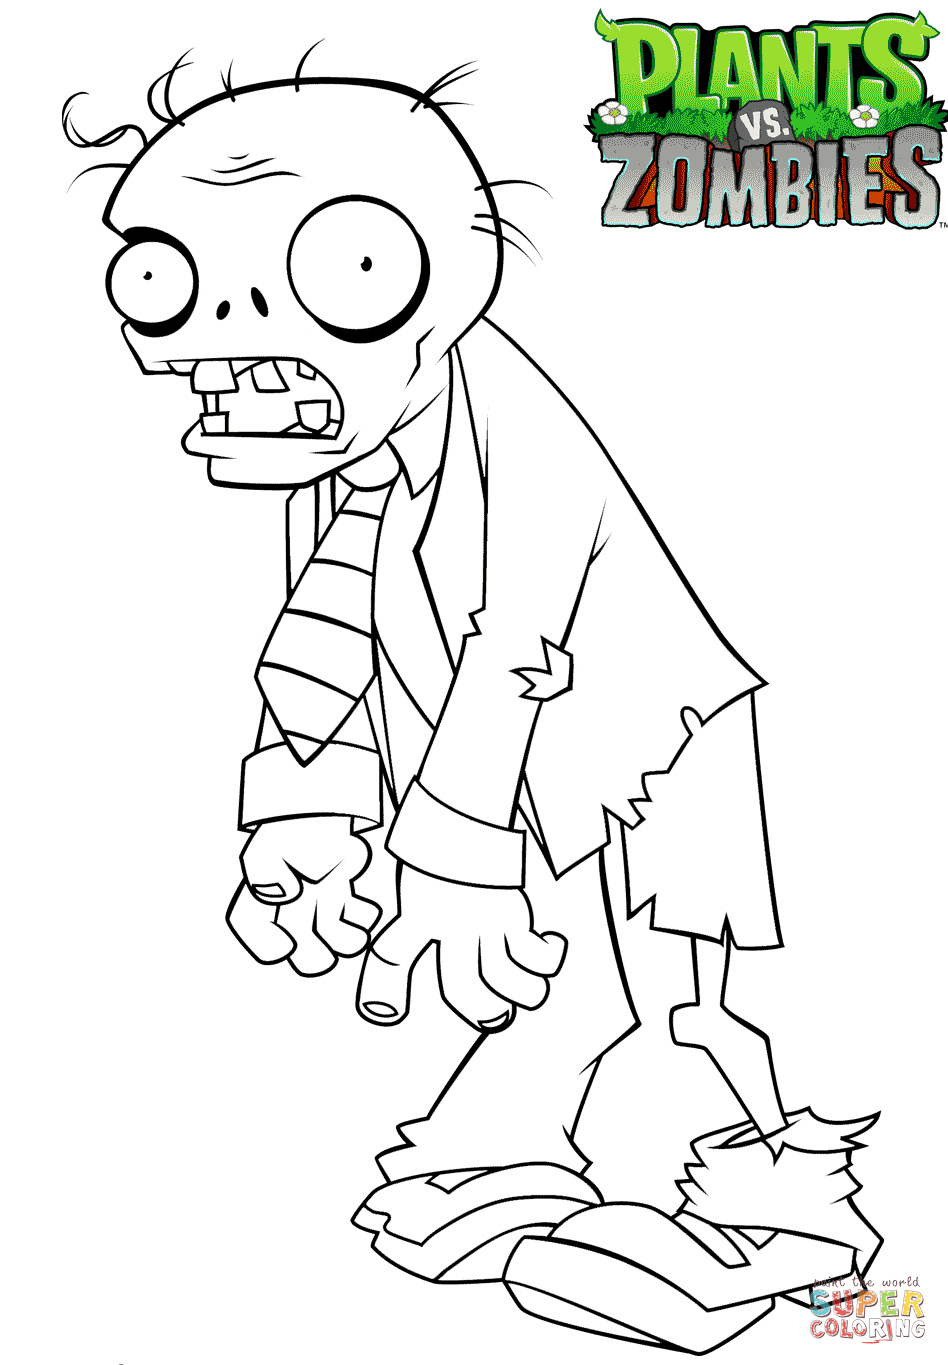 Image Result For Plants Vs Zombies Coloring Pages Coloring Books Plants Vs Zombies Coloring Pages